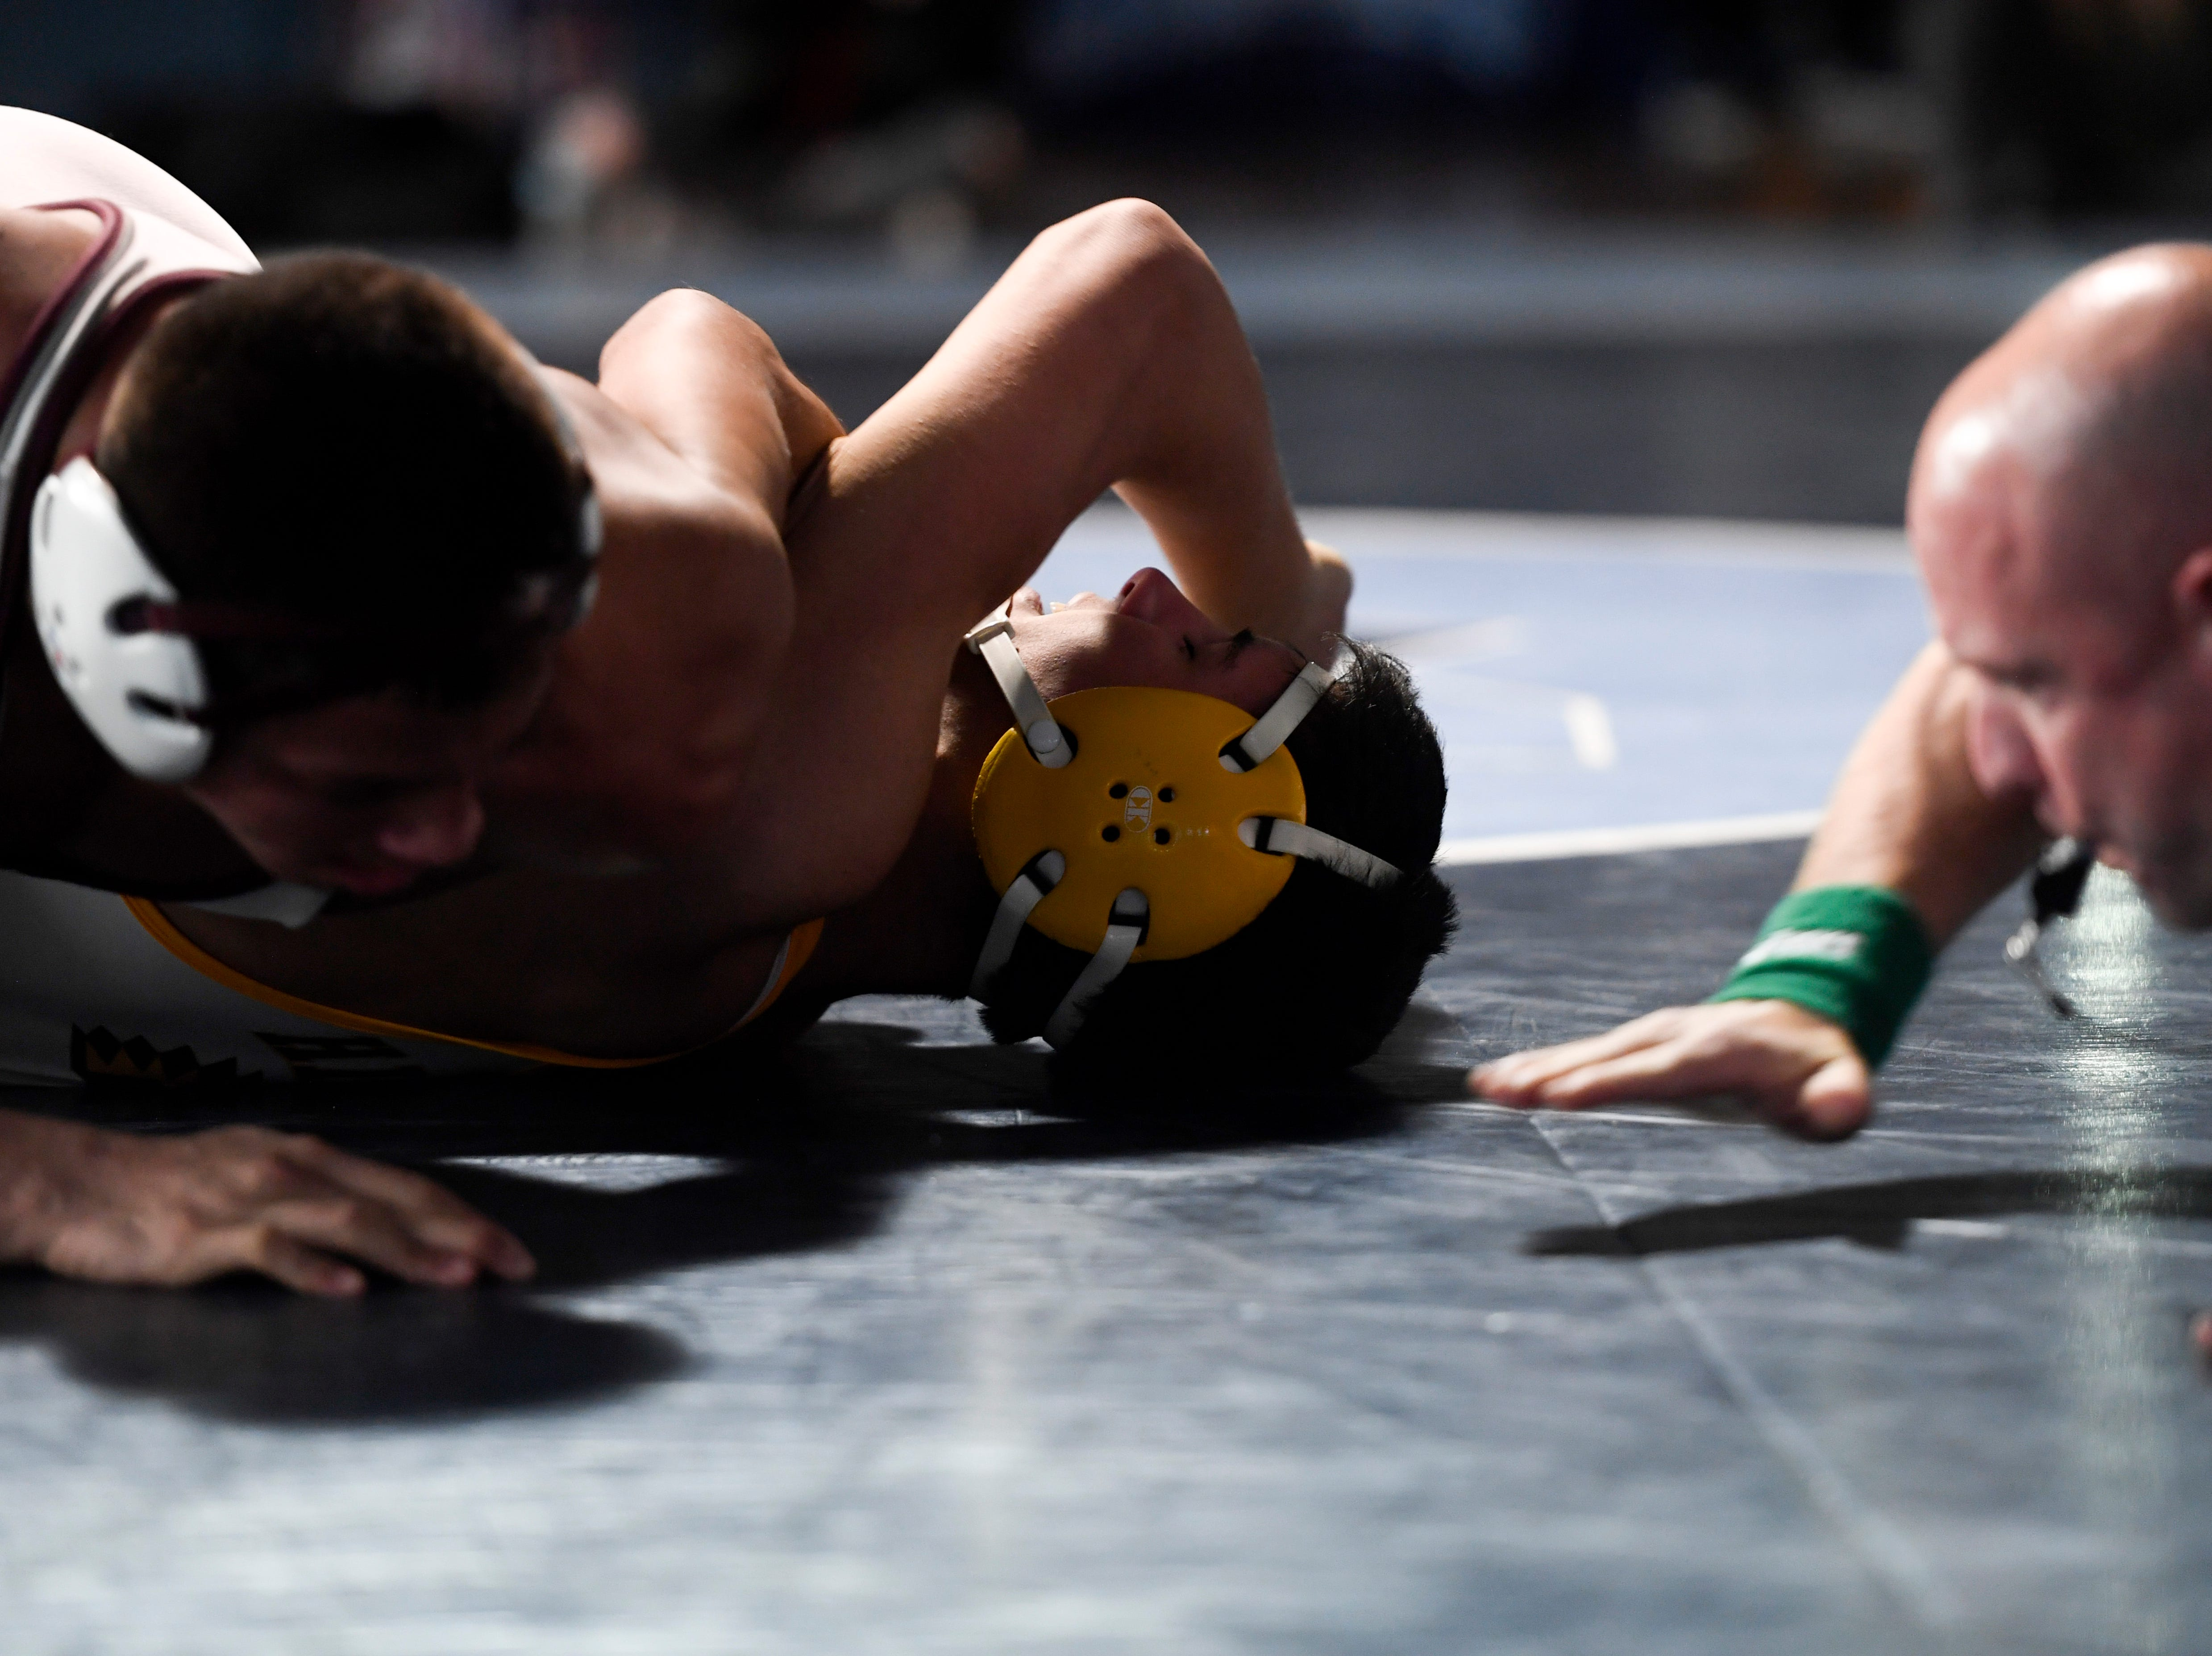 James Cruz of St. Peter's Prep, left, pins Vincent Mattaliano of Watchung Hills for the 170-pound title during the Sam Cali Battle for the Belt tournament on Sunday, Jan. 6, 2019, in West Orange.